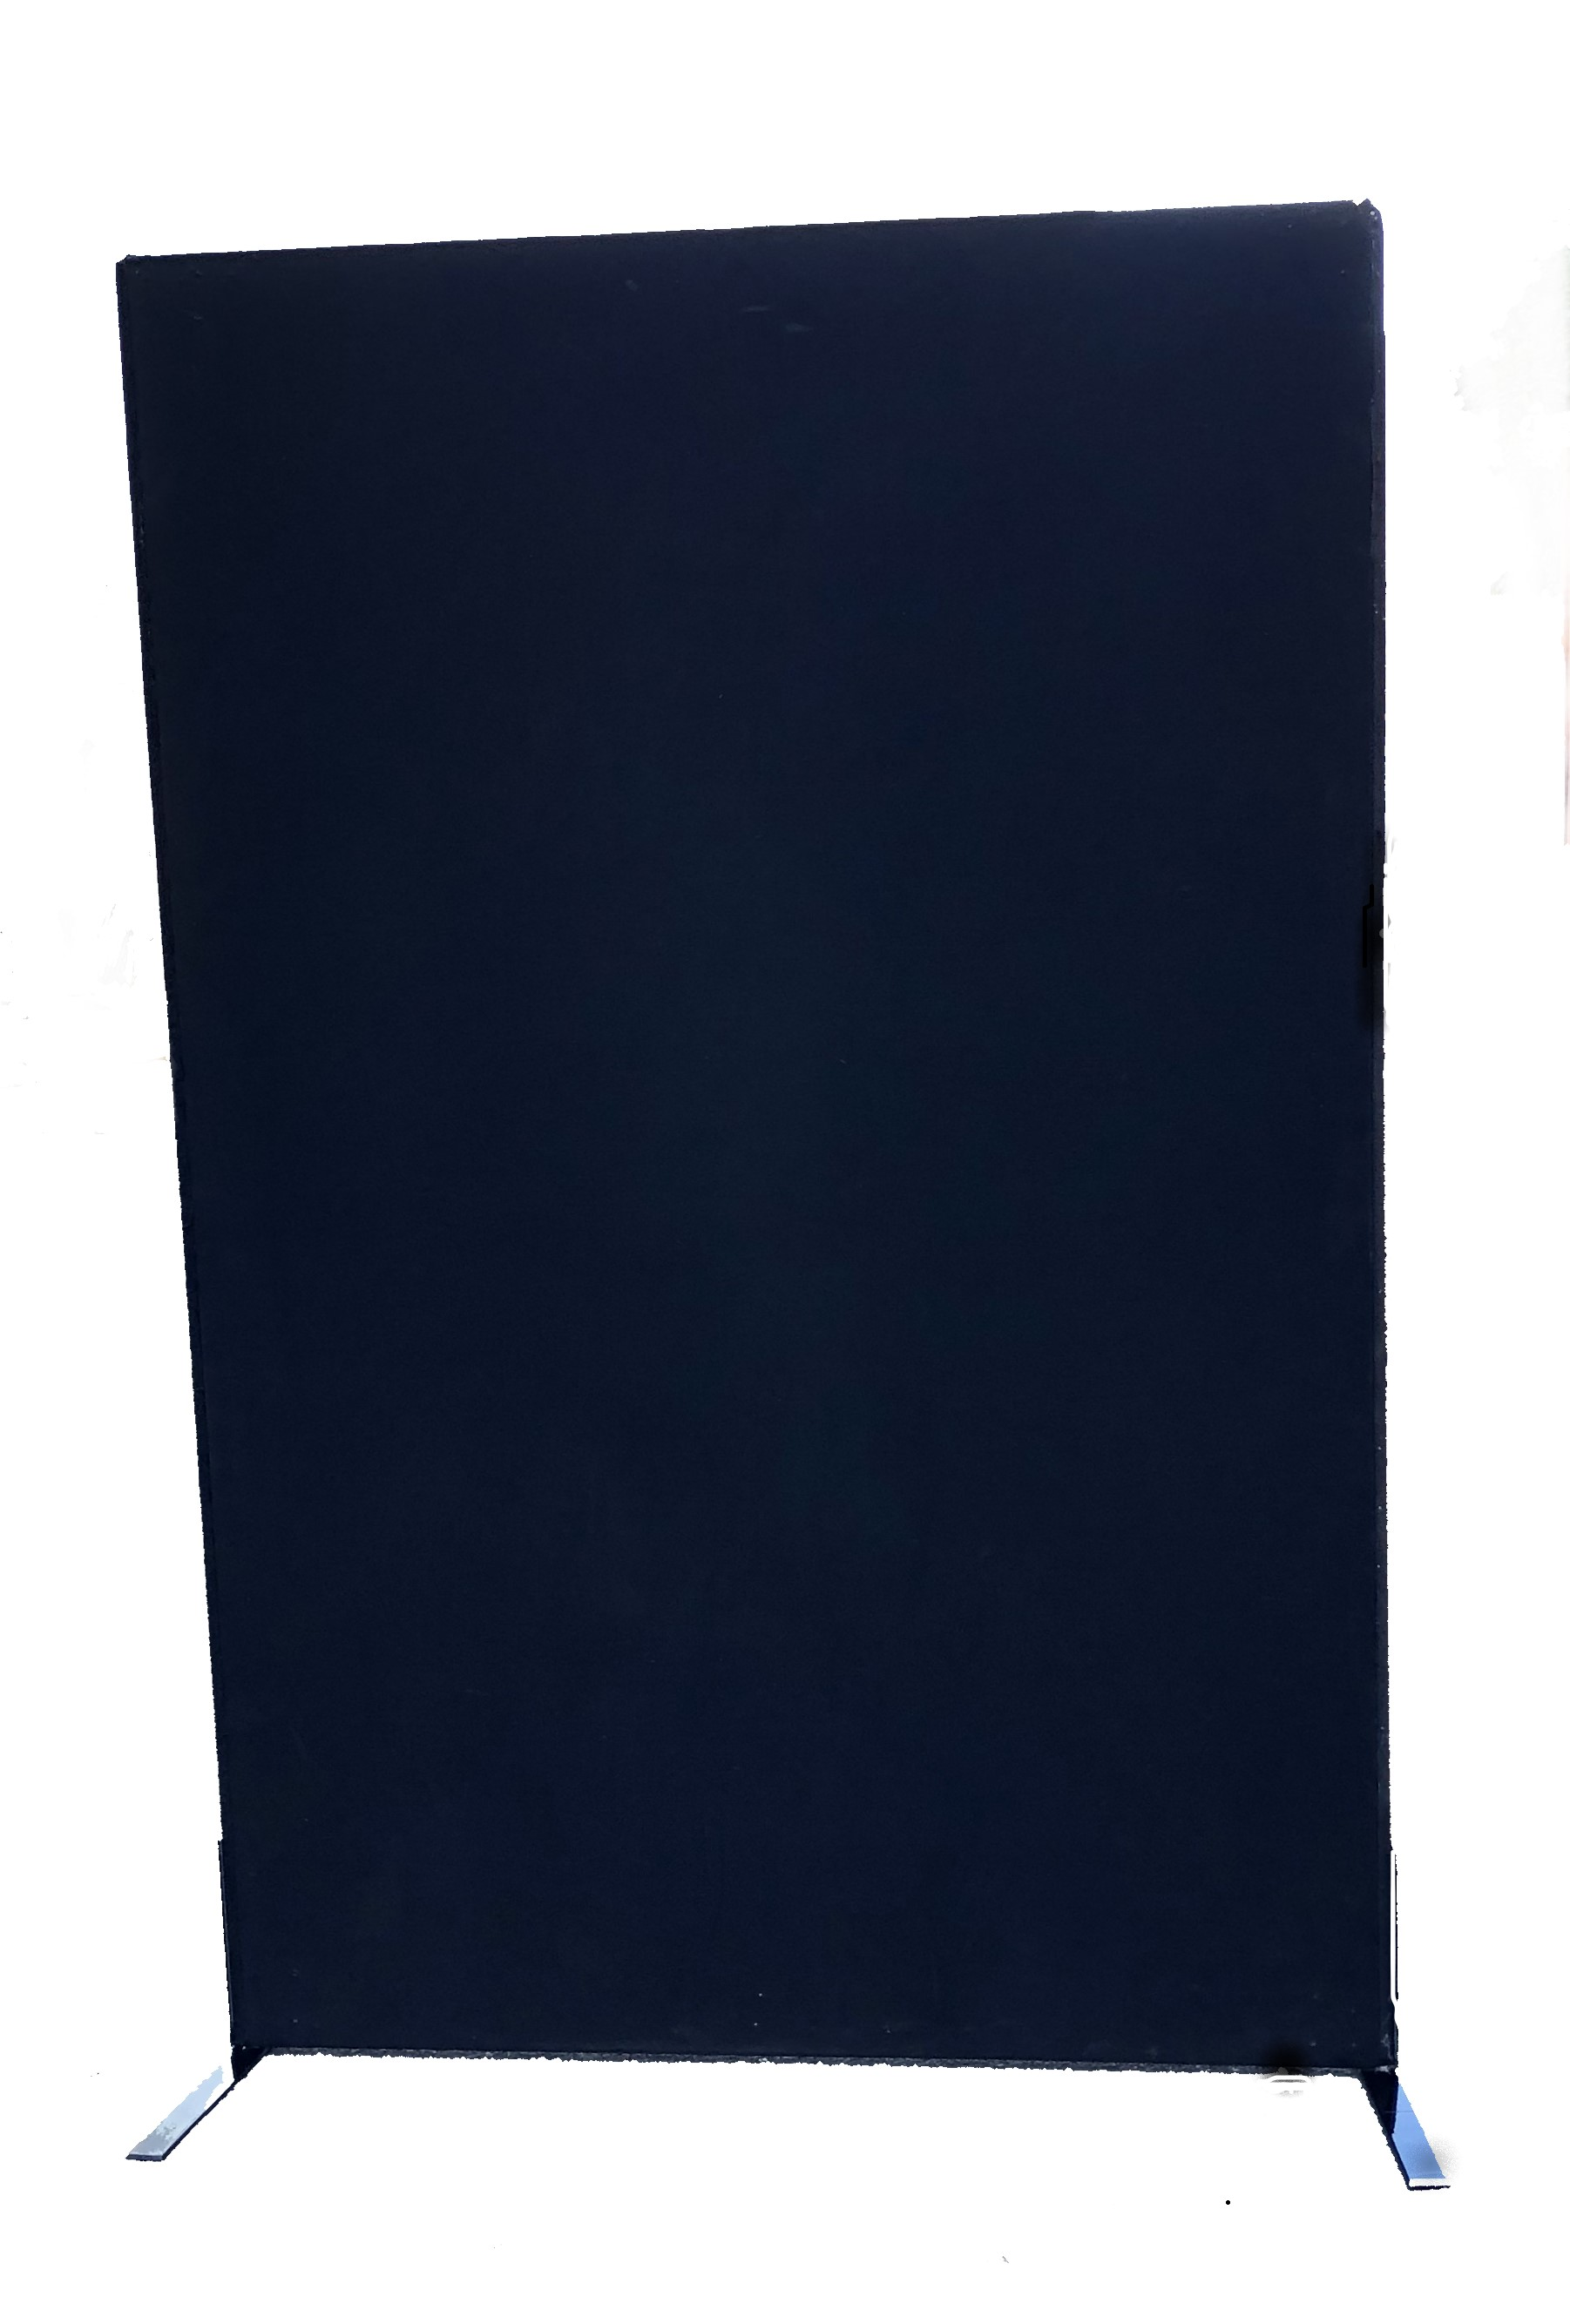 Free Standing Partition